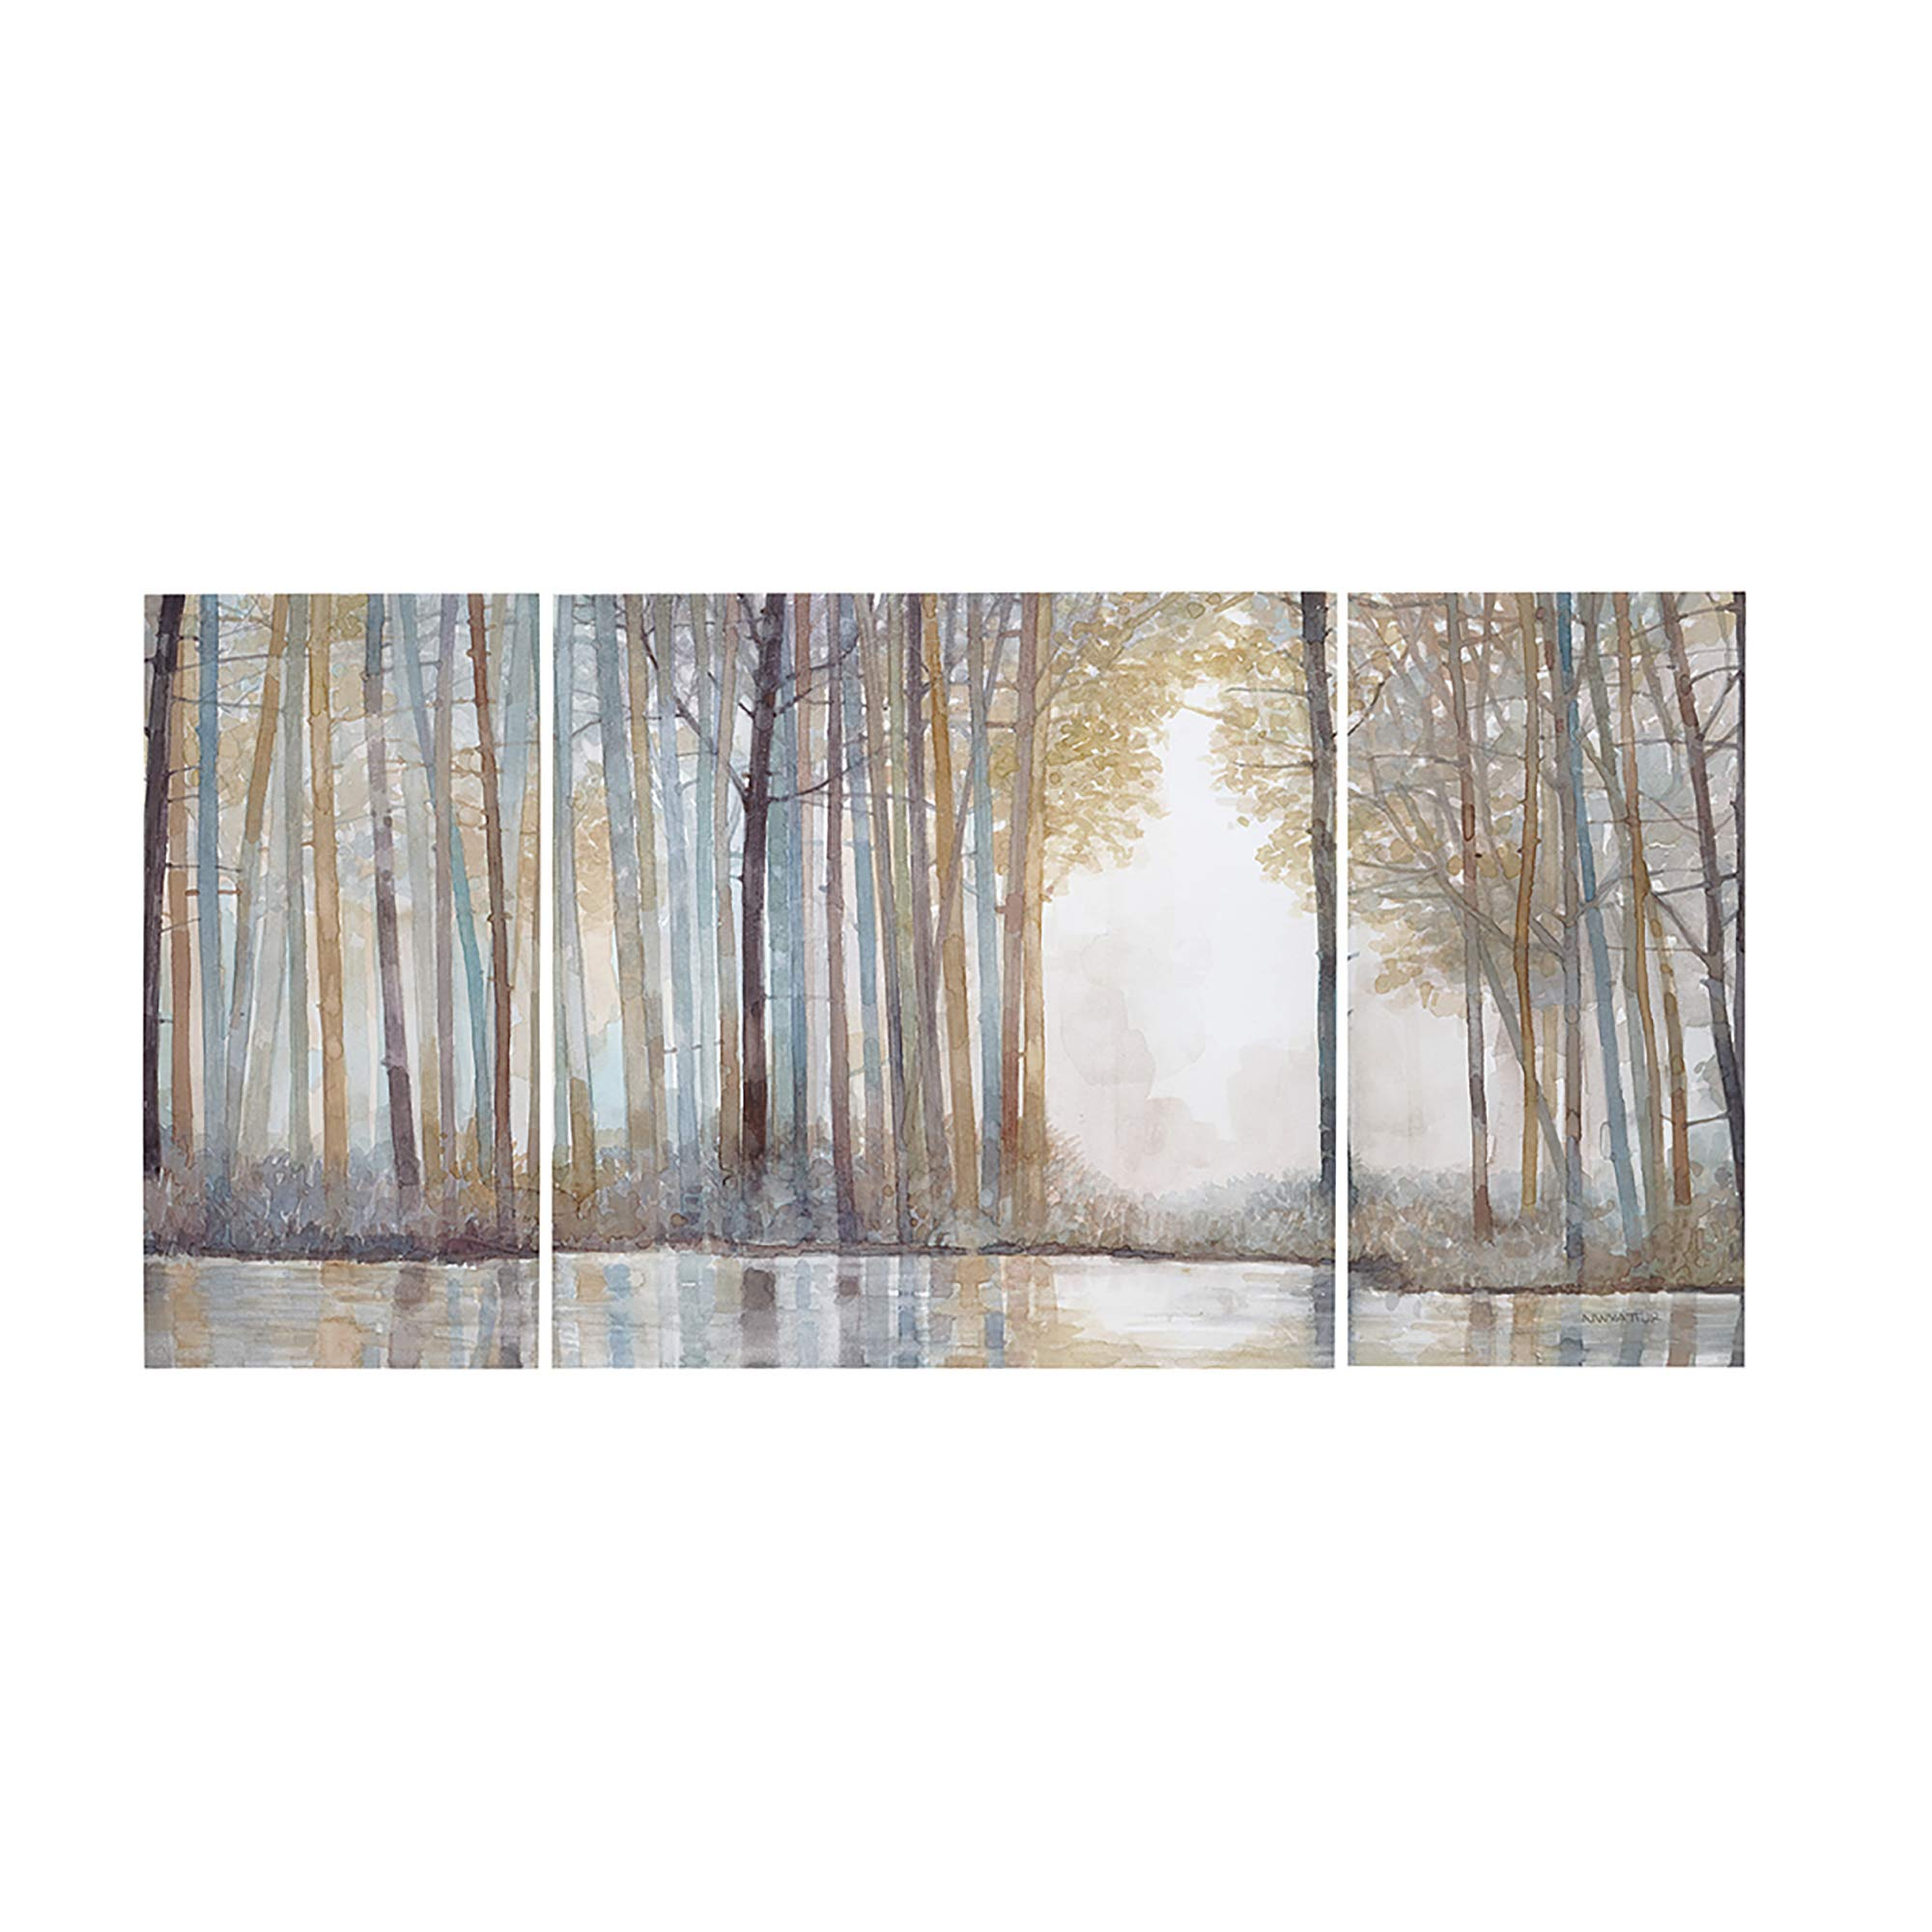 Madison Park Forest Reflections Wall Art - Canvas Wall Art Rustic Home Décor Autumn Color - Bamboo Stretched Wall Art for Living Room- 3 Piece Set Painting Canvas by Madison Park